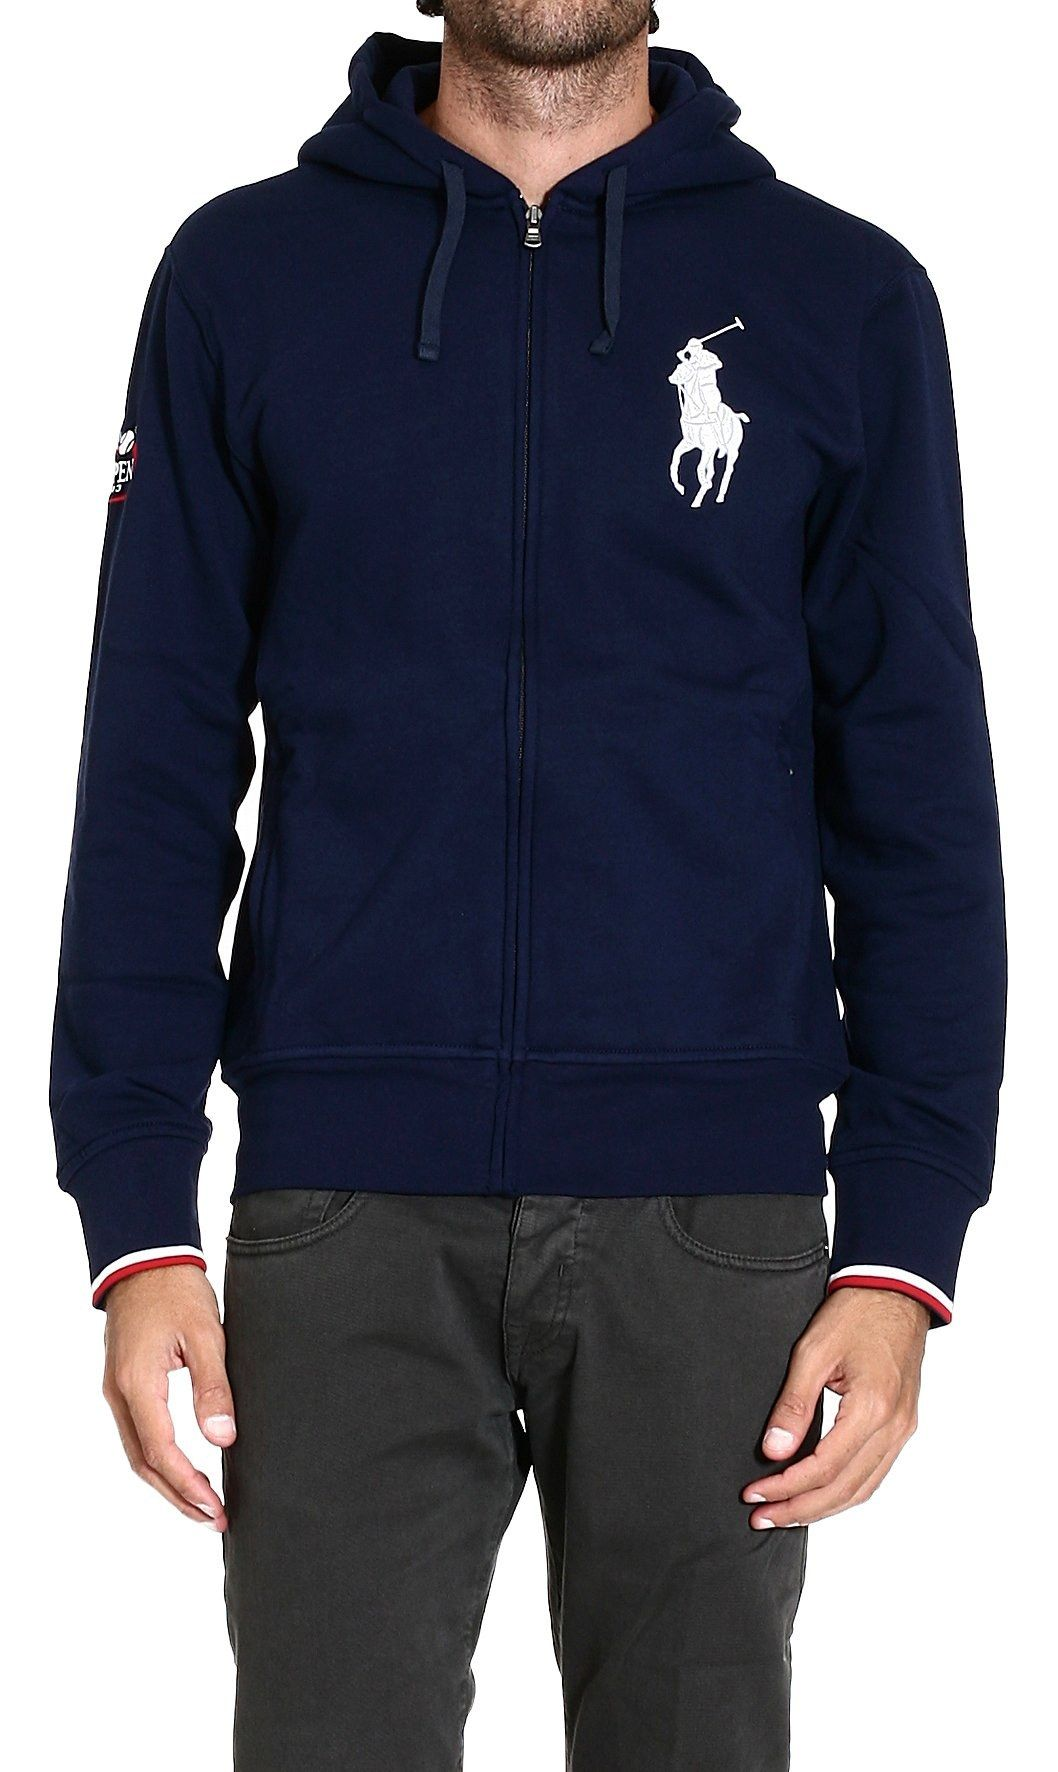 4e0eaccd4 Polo ralph lauren Sweater Sweatshirt with Hood Big Pony in Blue ...